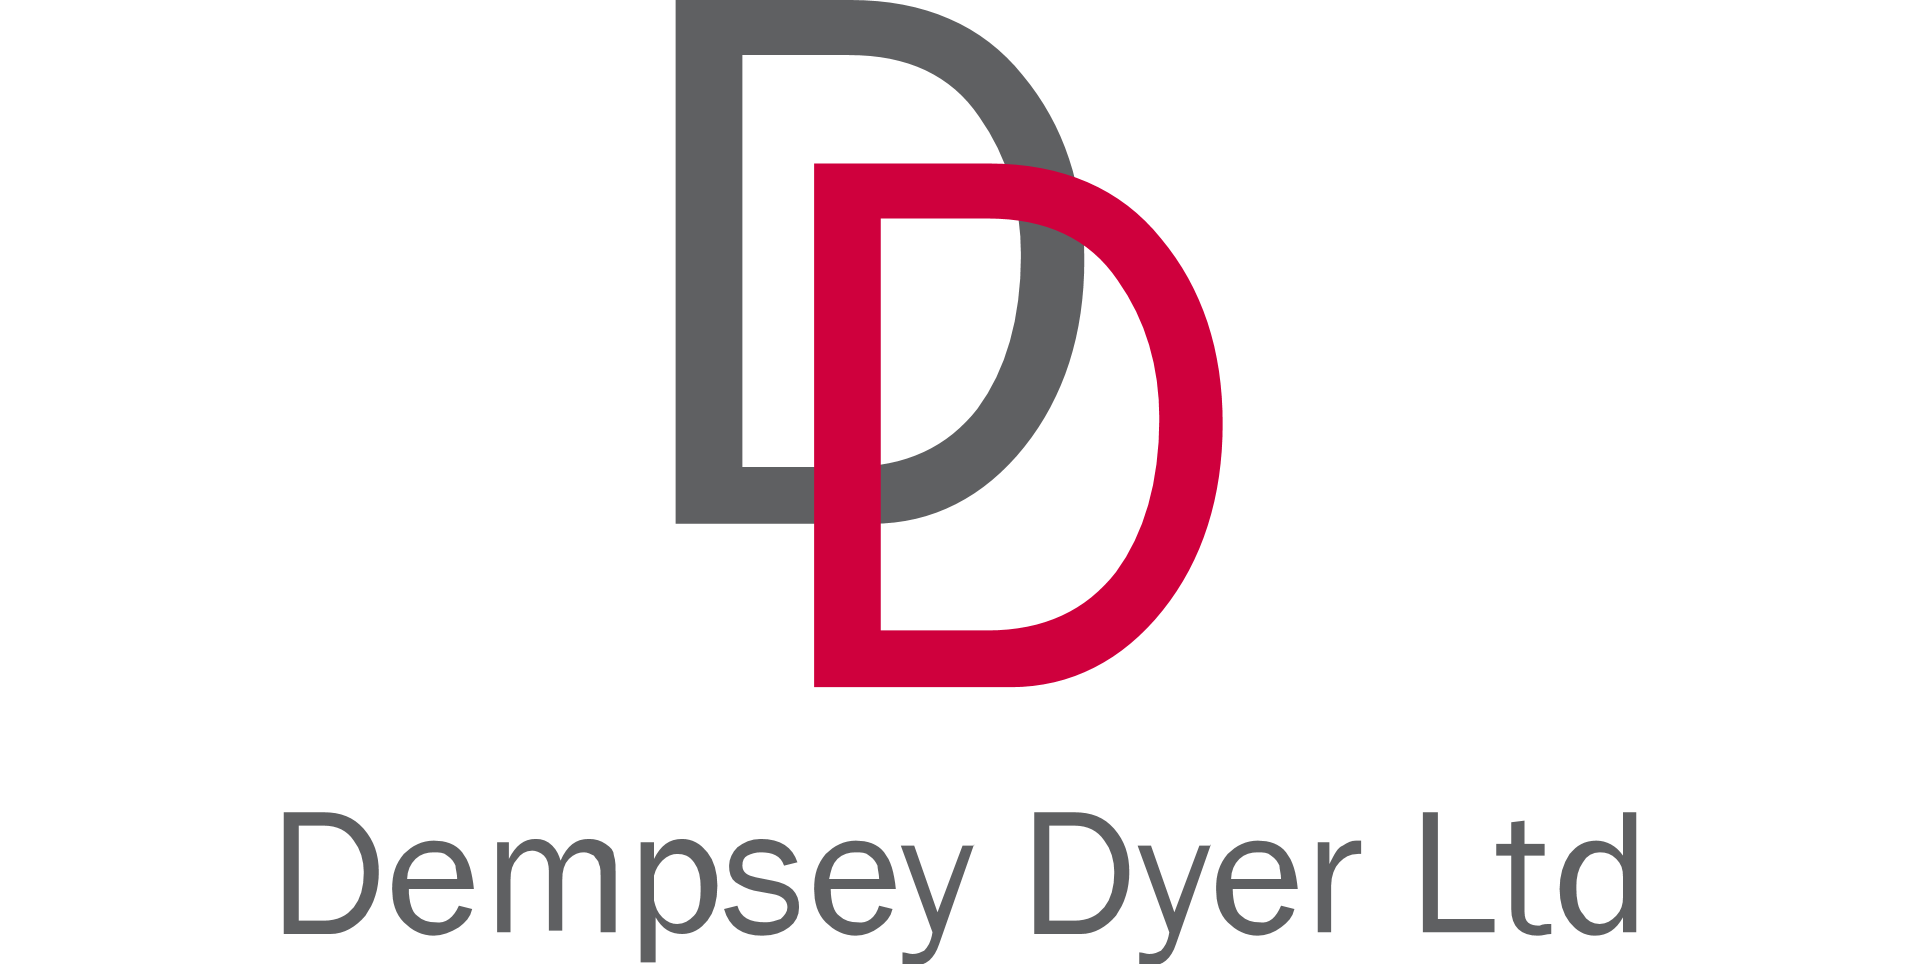 Dempsey Dyer Limited